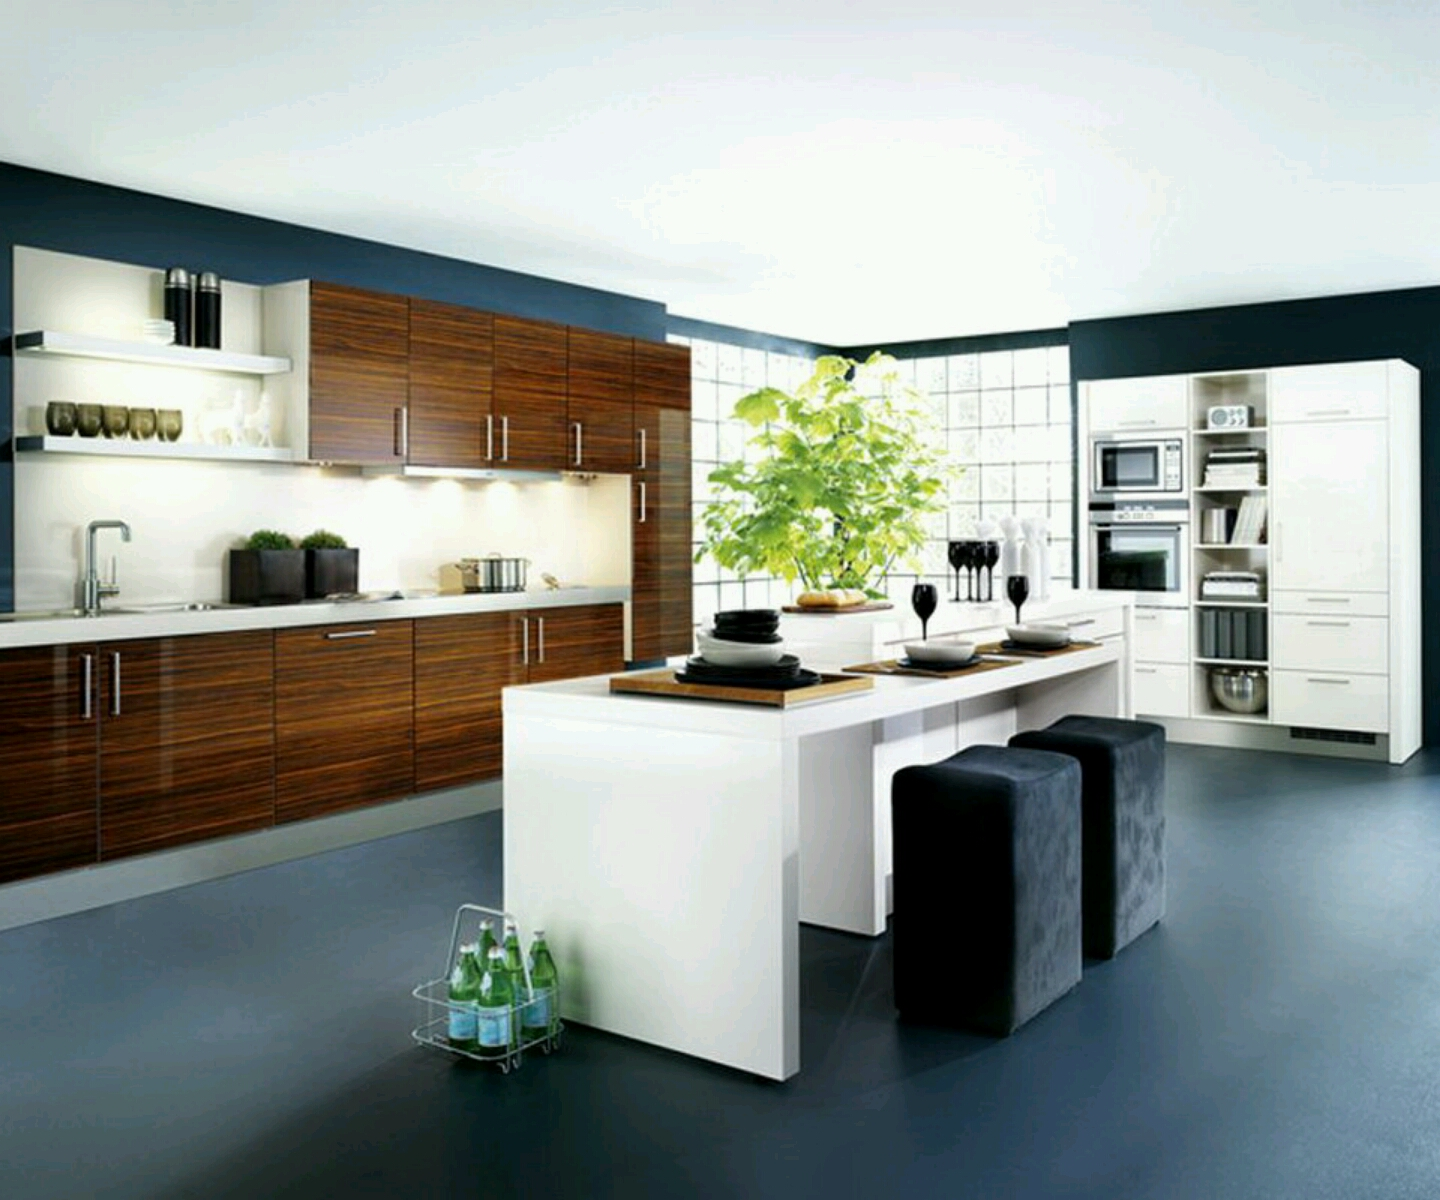 New home designs latest kitchen cabinets designs modern for Kitchen cabinet remodel